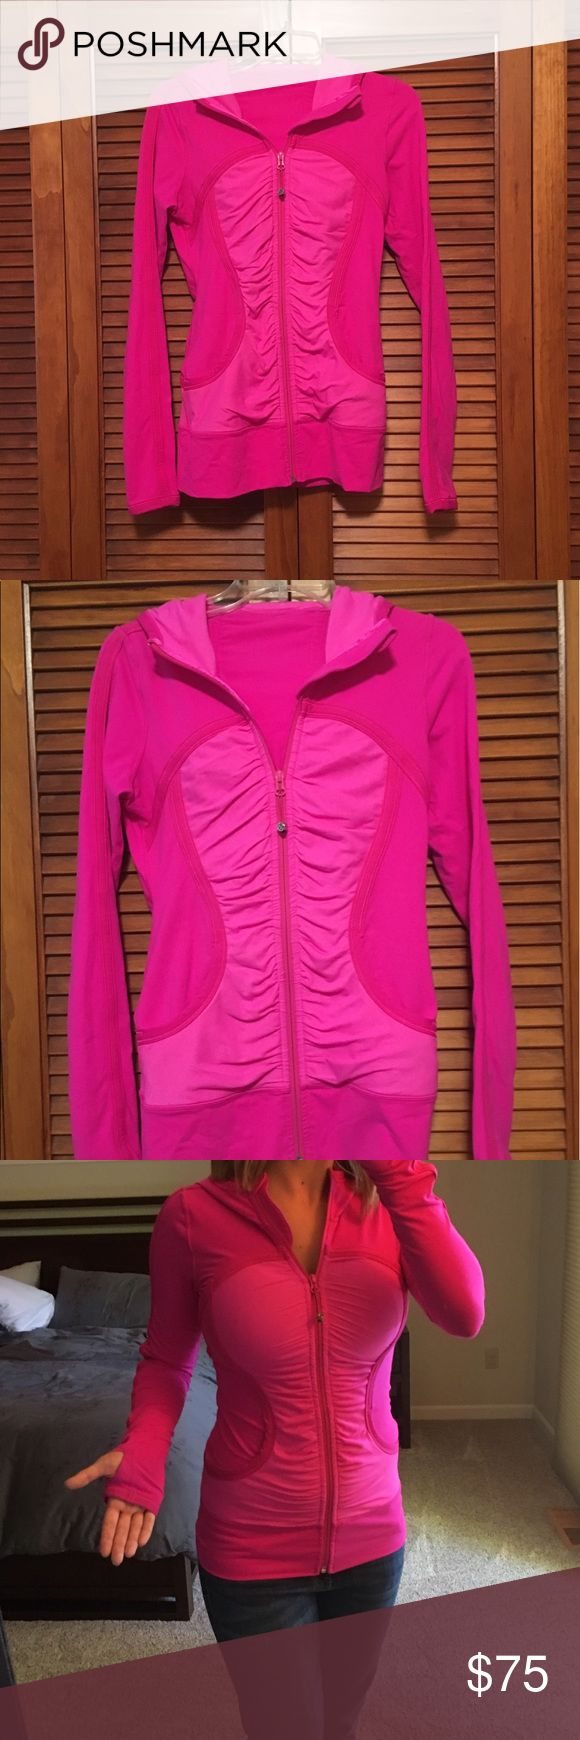 Lululemon Pink Zip Up Hoodie My most favorite piece of Lulu ever! I'm so sad to see it go, but it's too snug on me :( Bright pink- I always received compliments when I wore this jacket. Please ask questions. lululemon athletica Jackets & Coats